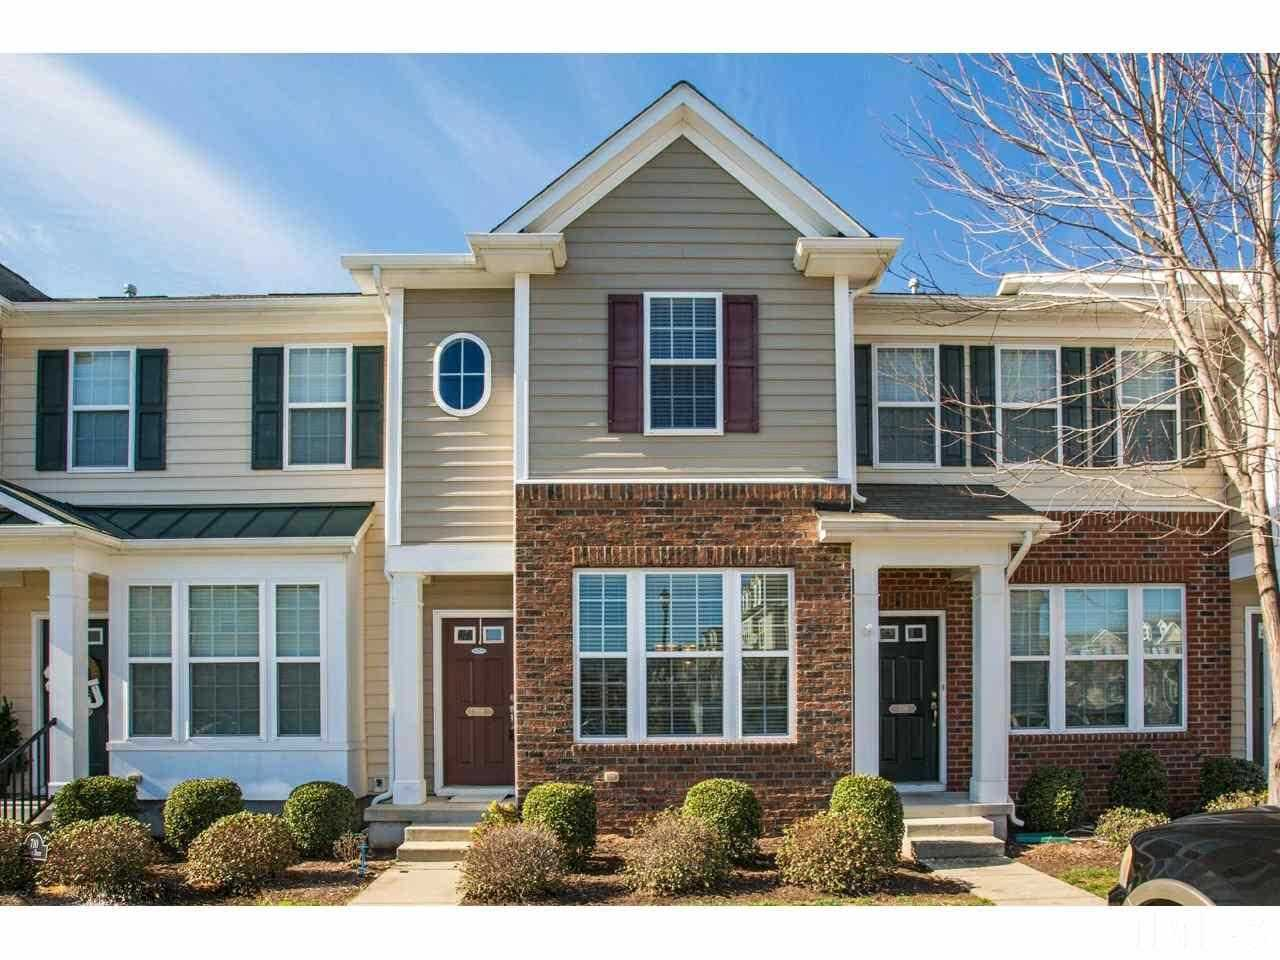 000 Confidential Ave. Raleigh, NC 27603 | MLS 2229884 Photo 1